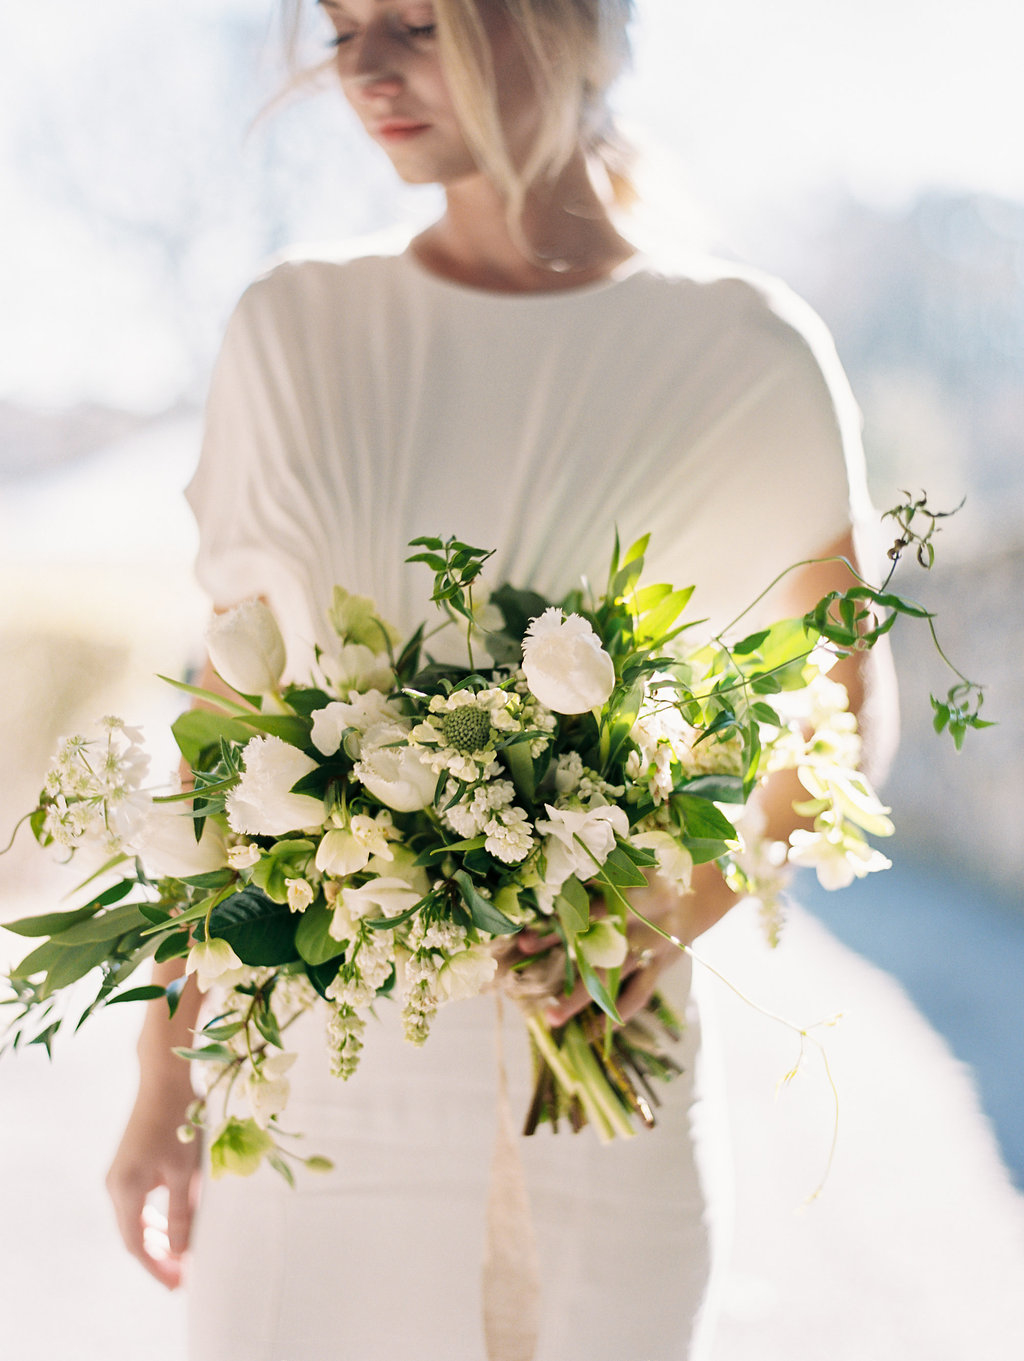 Jessica Zimmerman | Business Education Blog | How to get started with your floral business